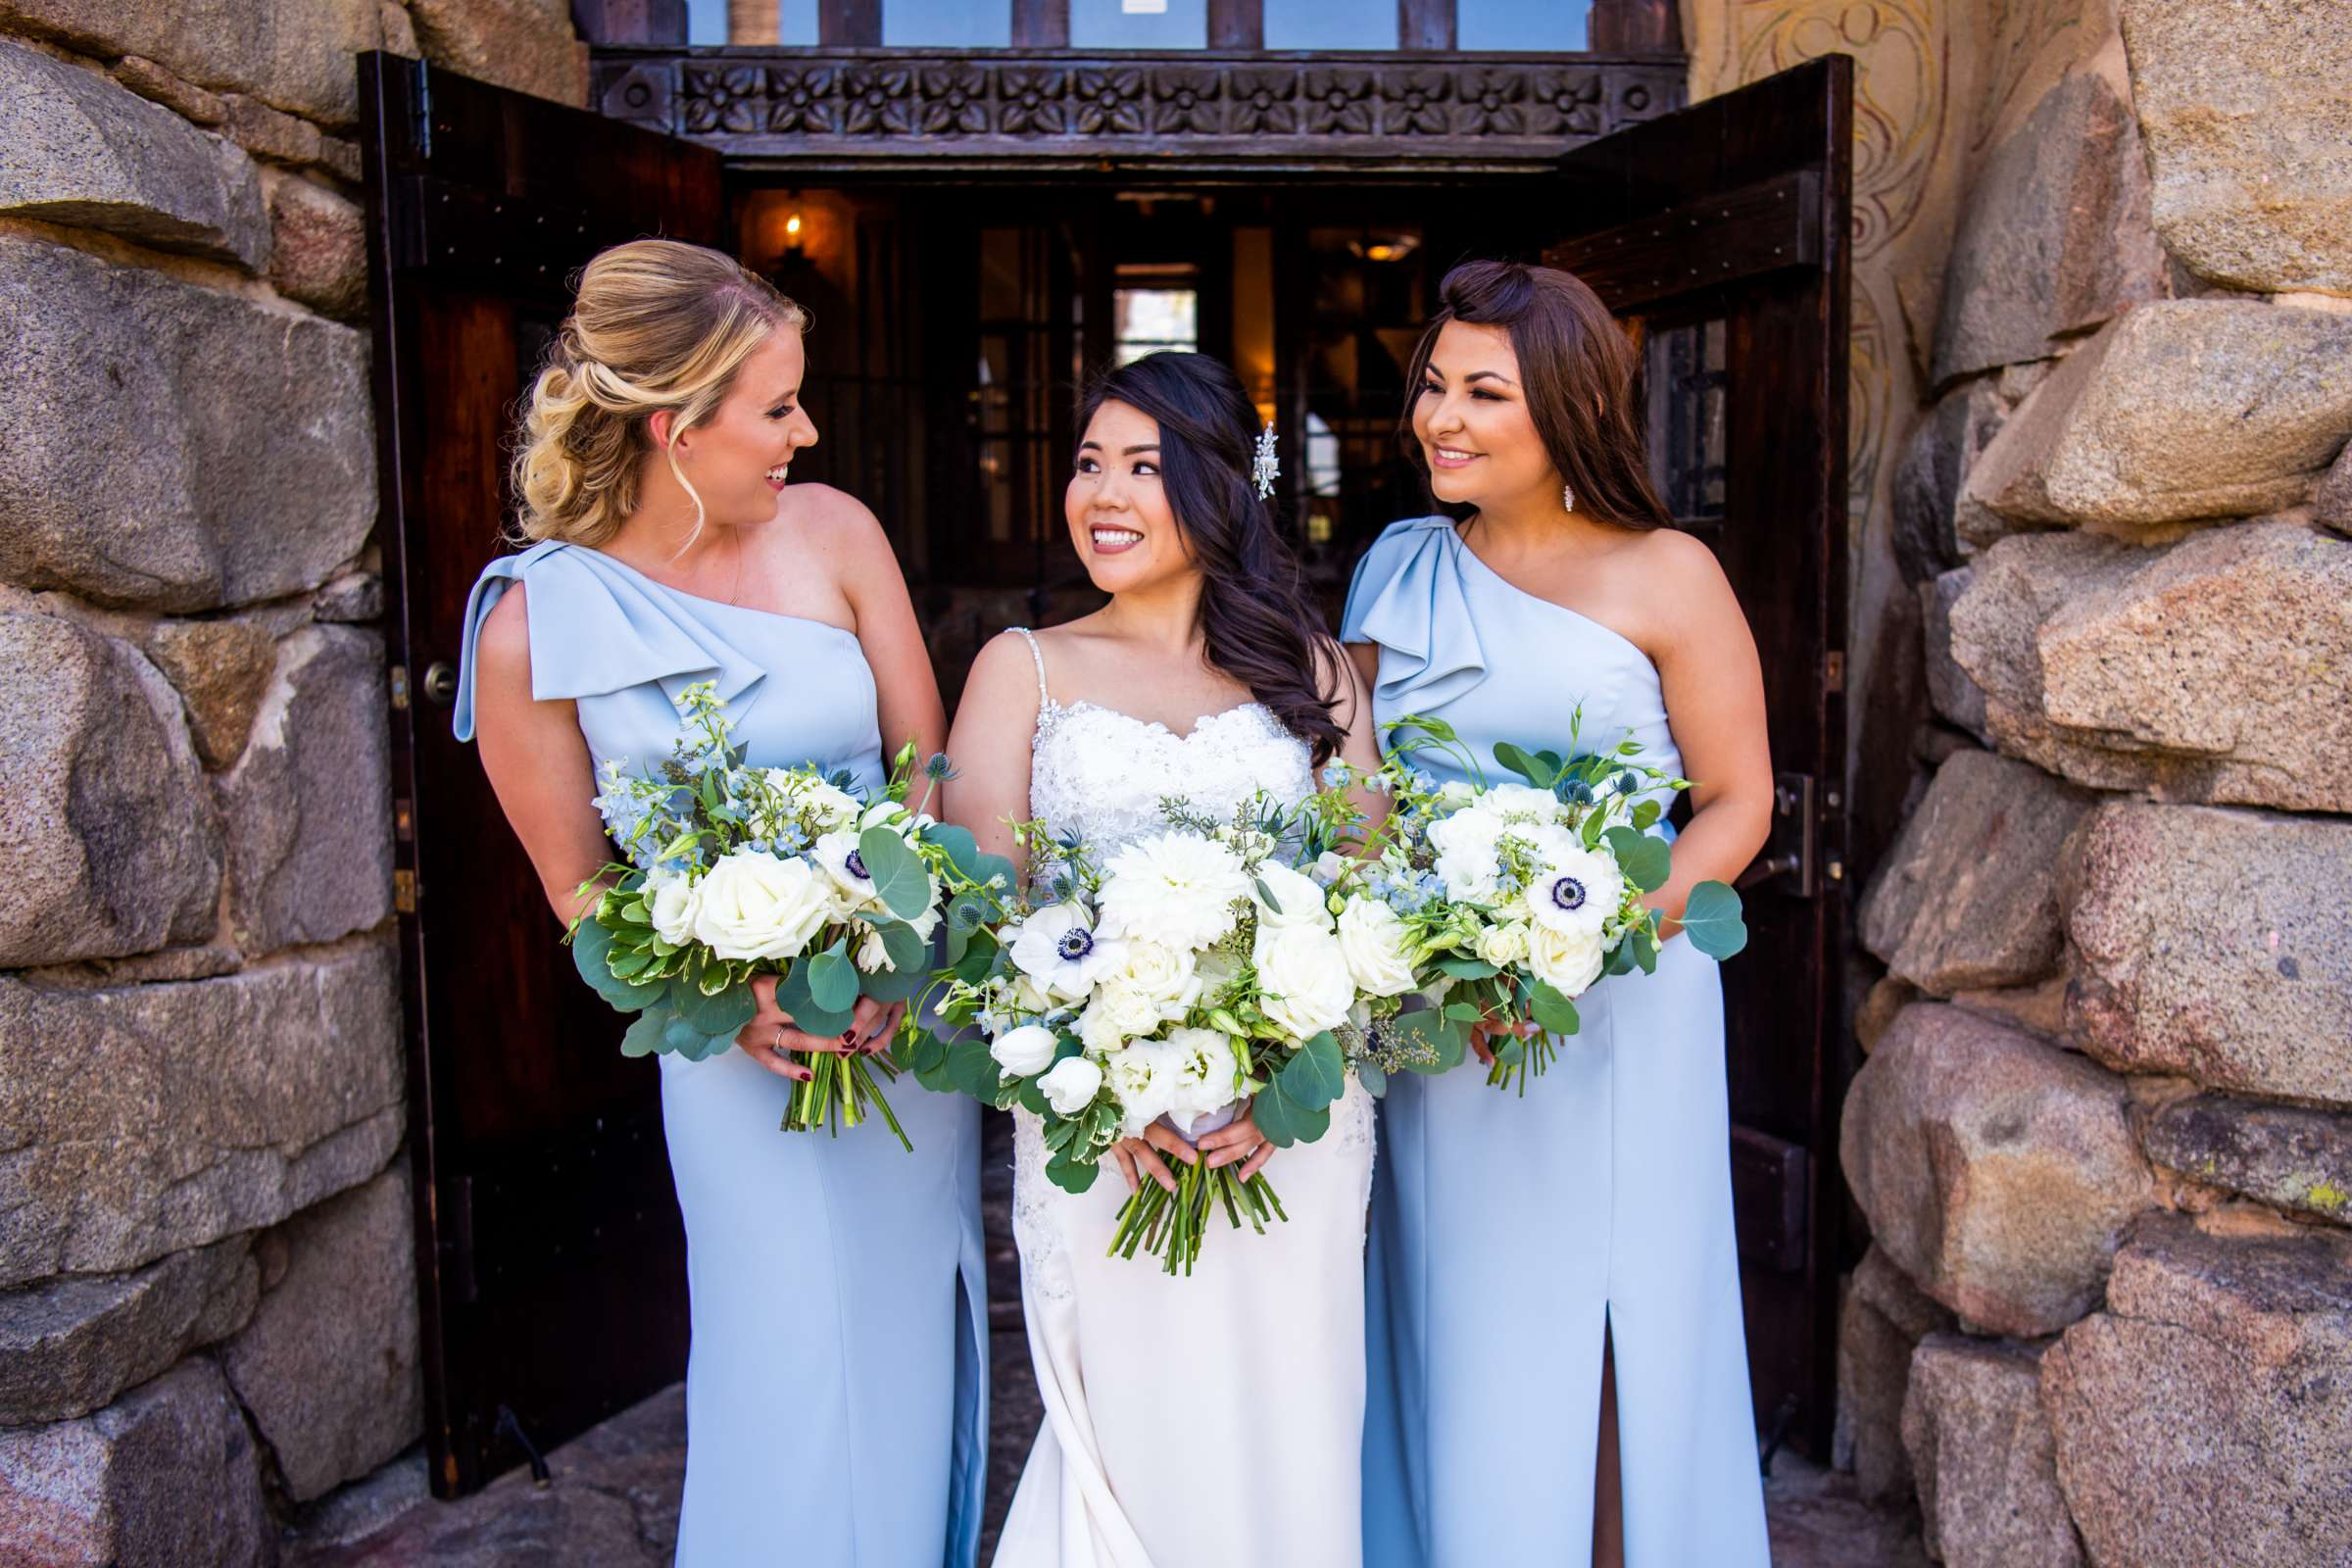 Mt Woodson Castle Wedding coordinated by I Do Weddings, Aya and Jared Wedding Photo #486902 by True Photography